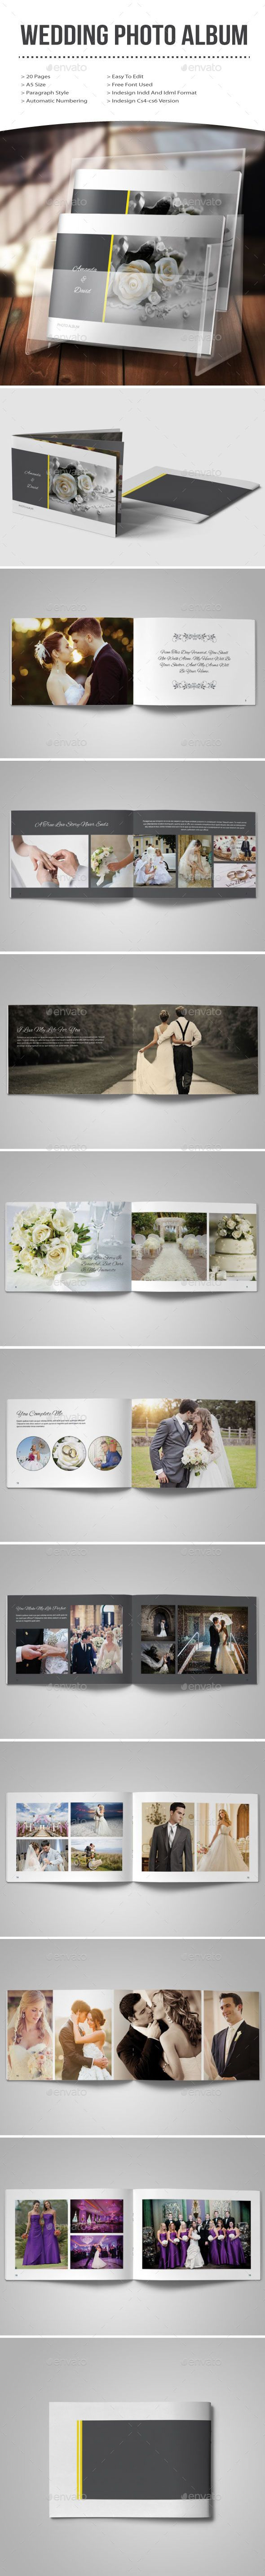 88 best Wedding Photo Album Template images on Pinterest | Photo ...